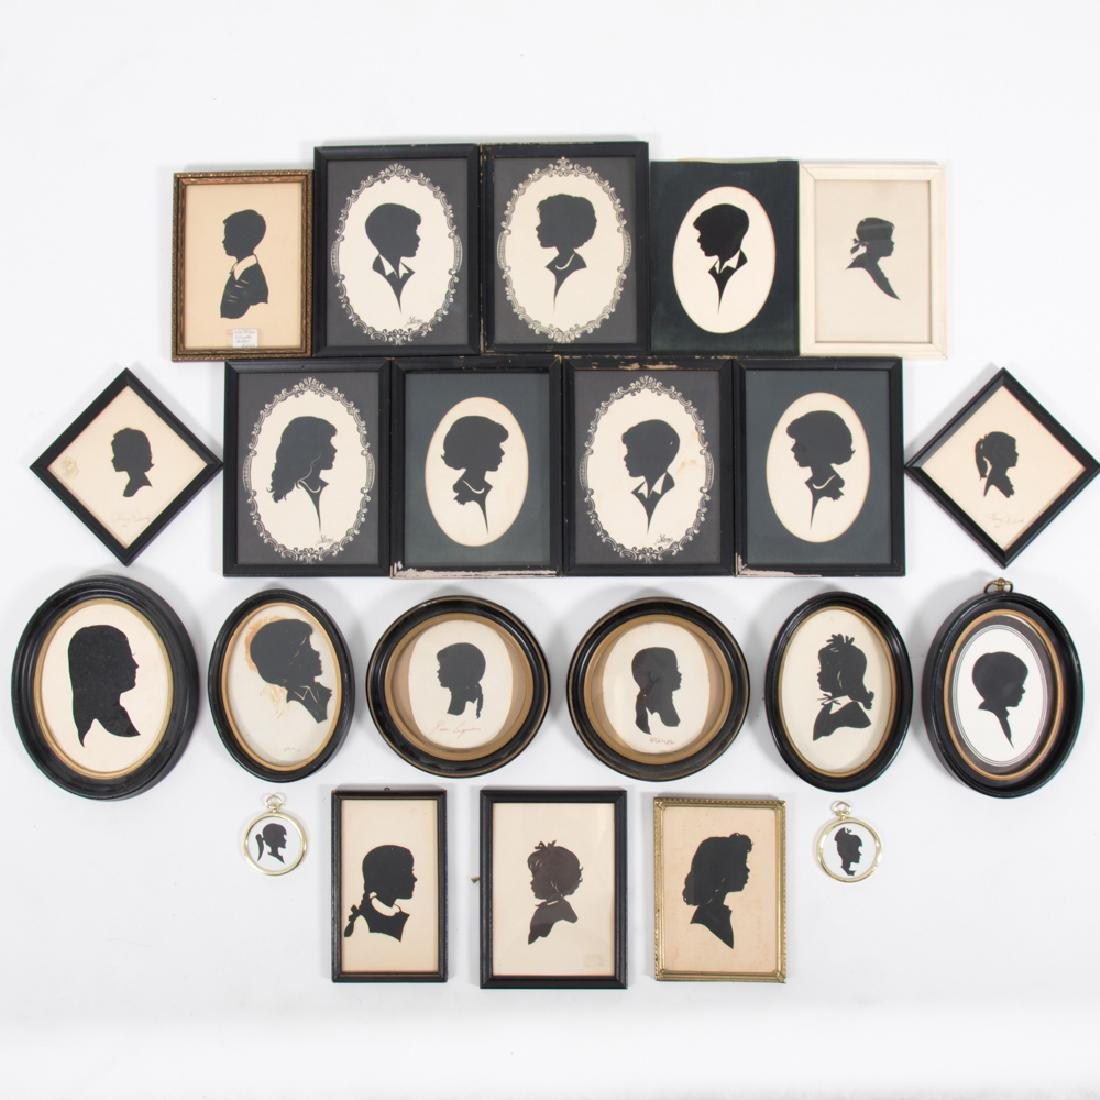 A Collection of Twenty-Two Cut Paper Silhouettes by